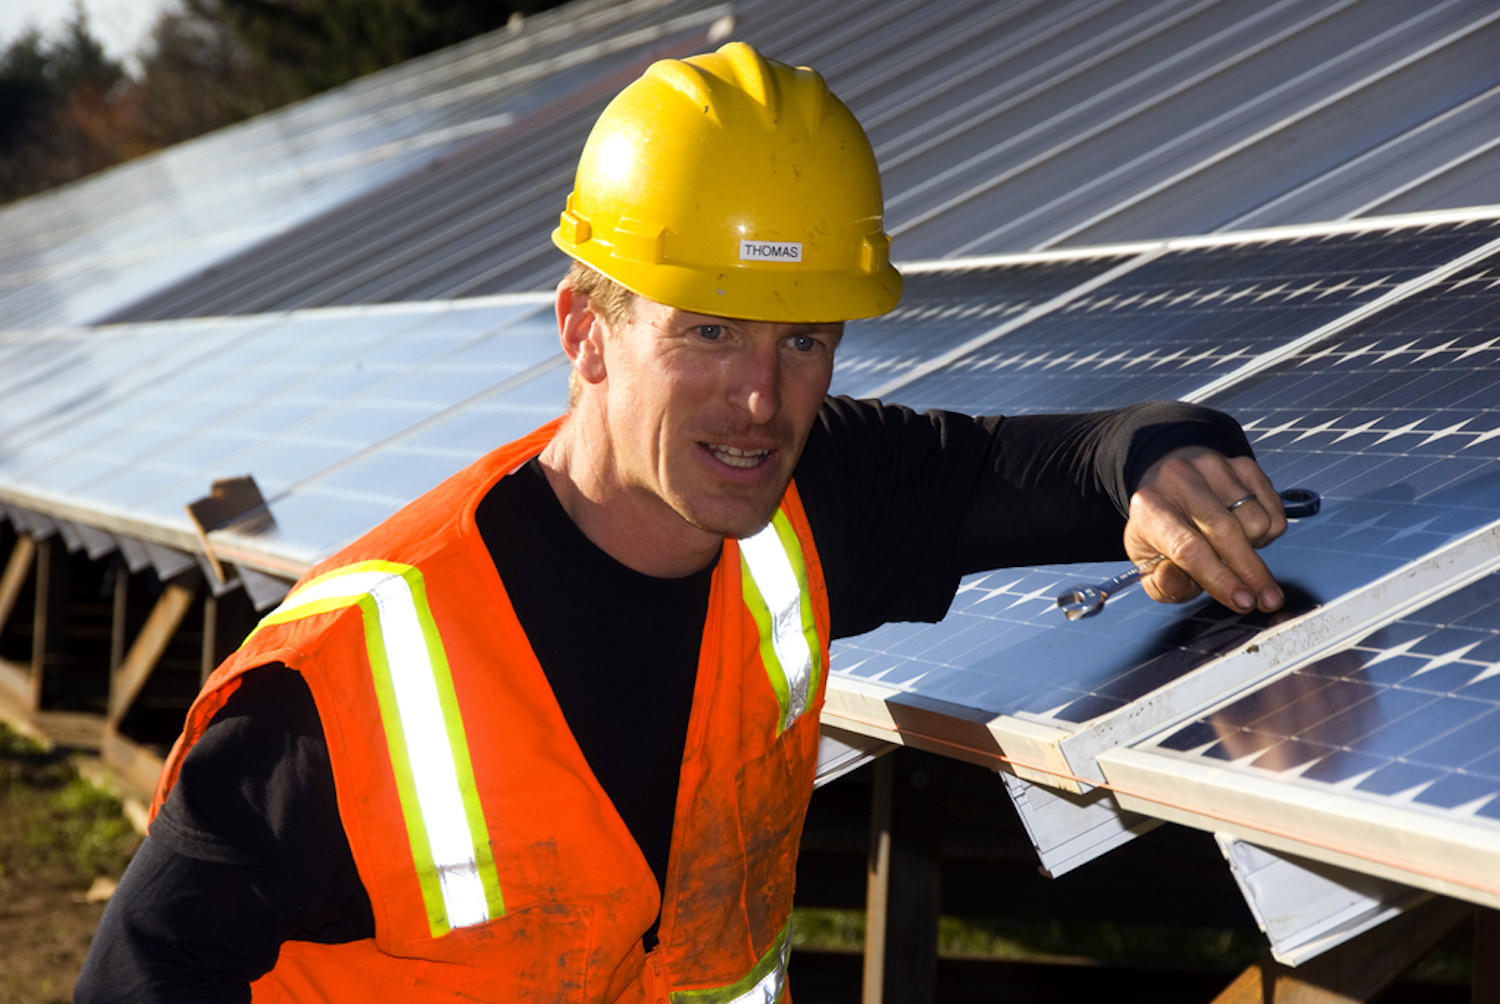 A worker checks to the alignment of a solar panel prior to installation (Nov. 26, 2008)